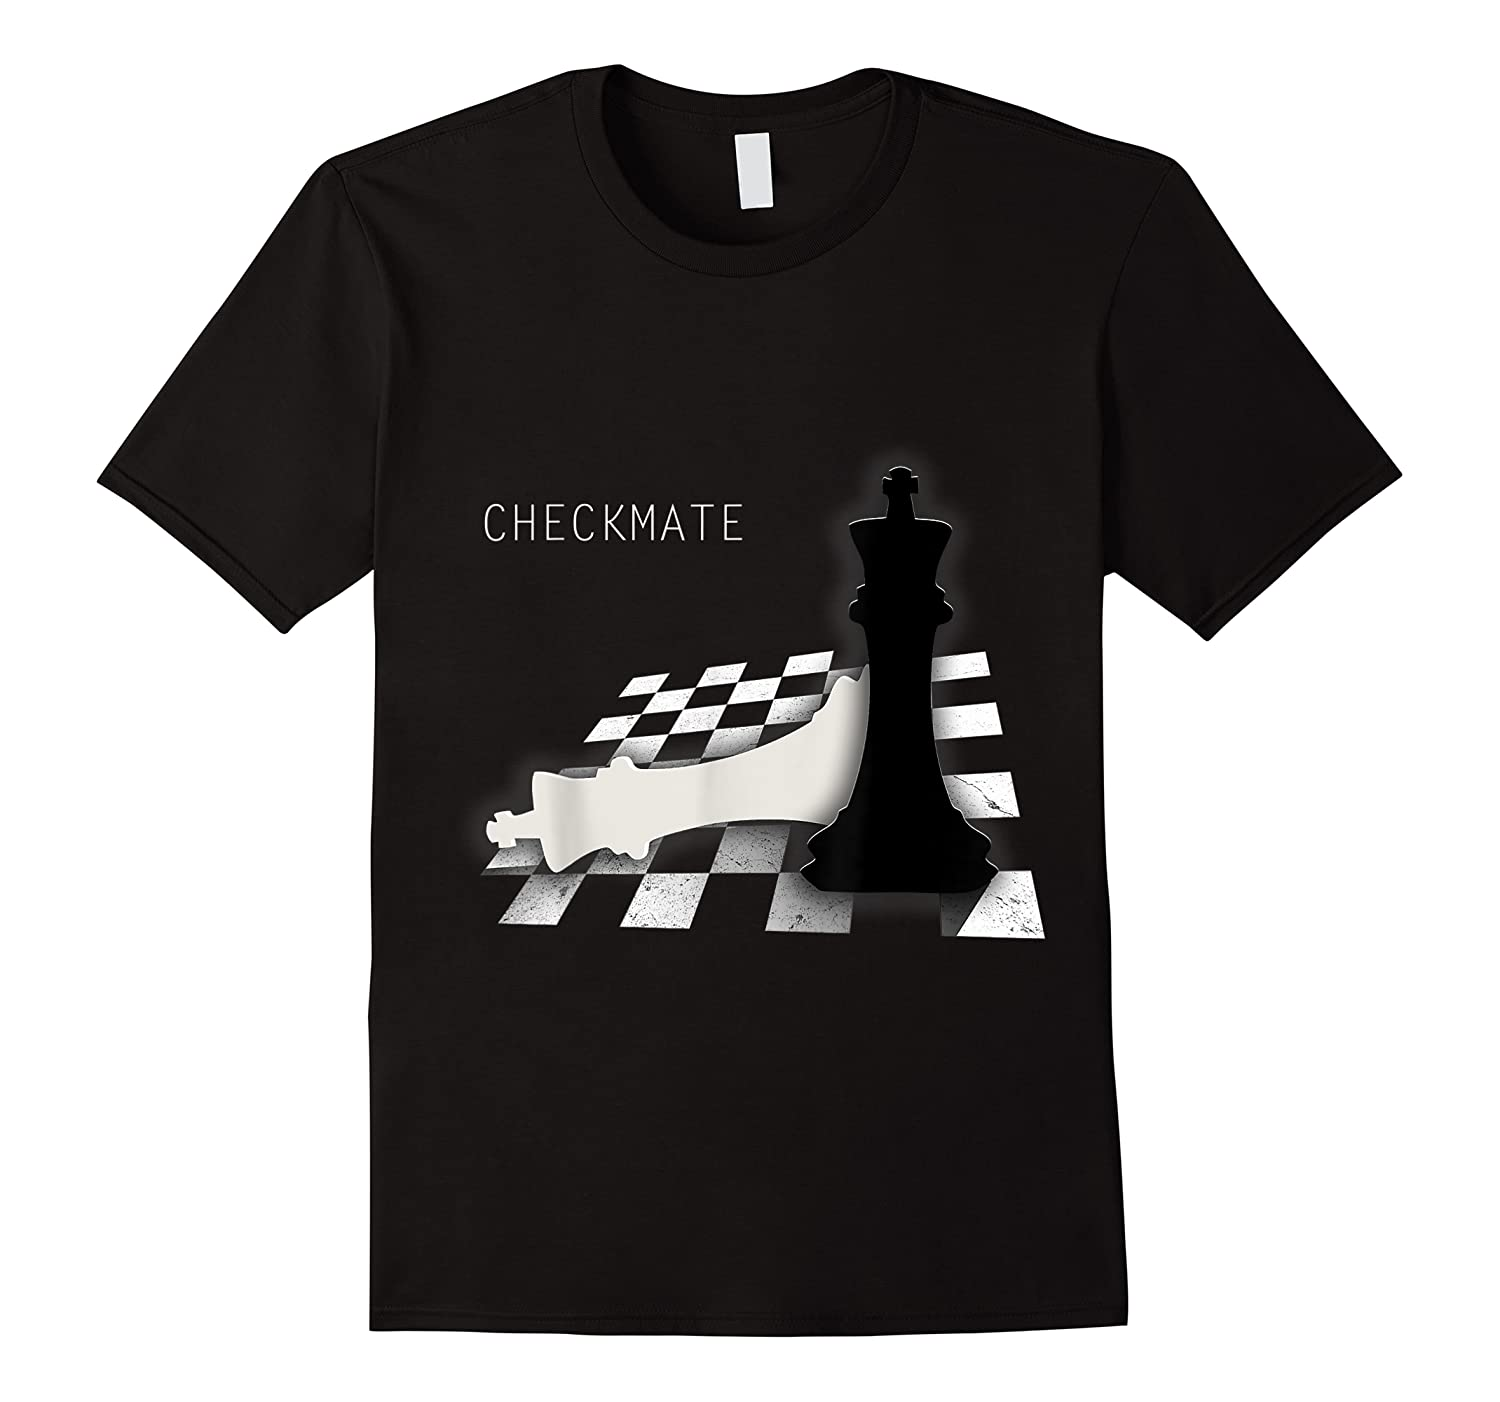 Checkmate Funny Cute Gift For Cool Chess Player Shirts